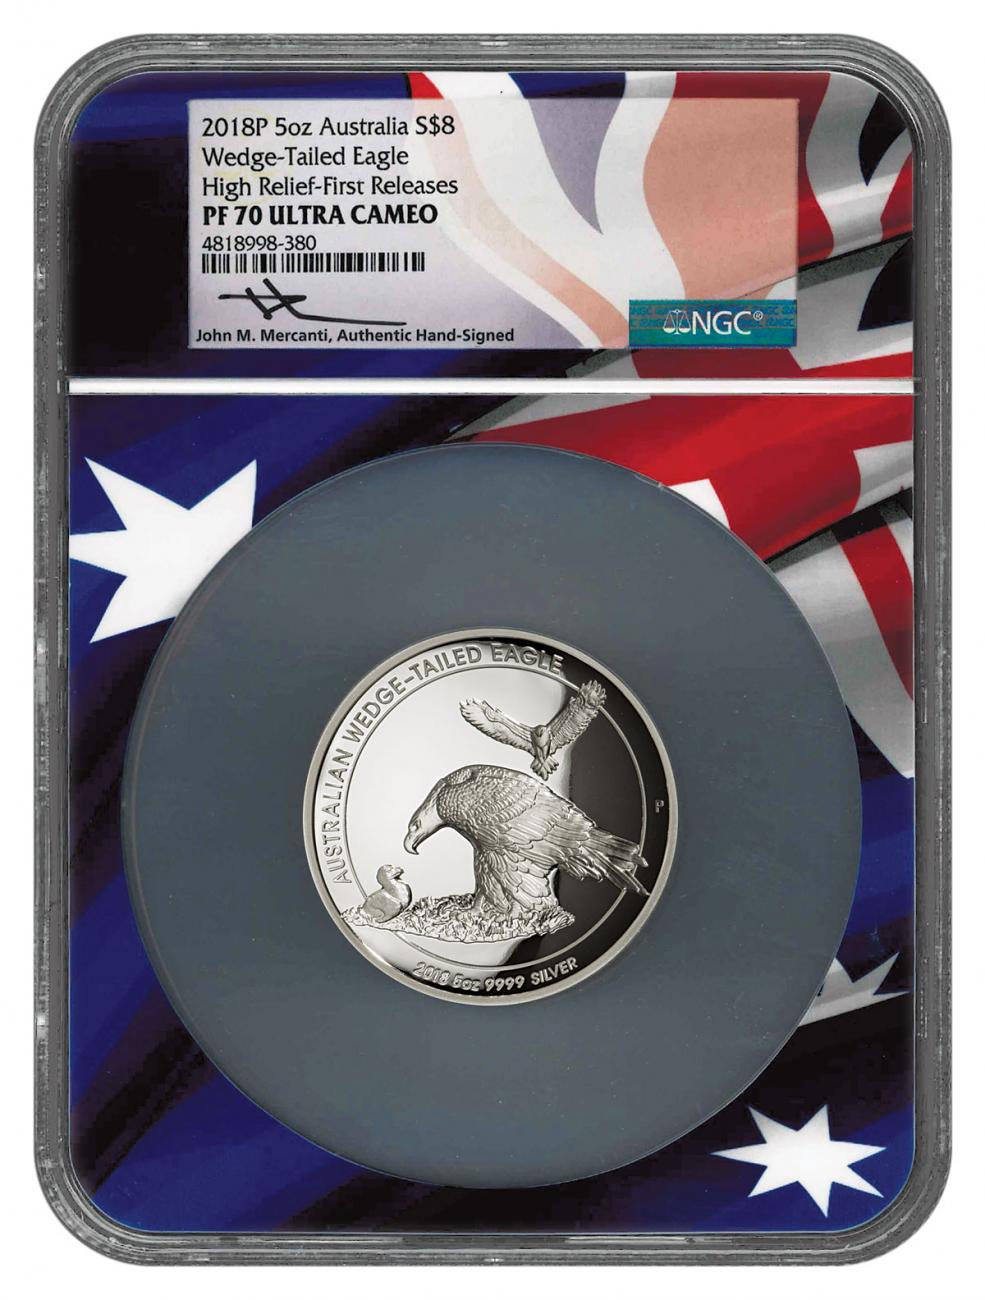 2018-P Australia 5 oz High Relief Silver Wedge-Tailed Eagle Proof $8 Coin Scarce and Unique Coin Division NGC PF70 UC FR Flag Core Mercanti Signed Label